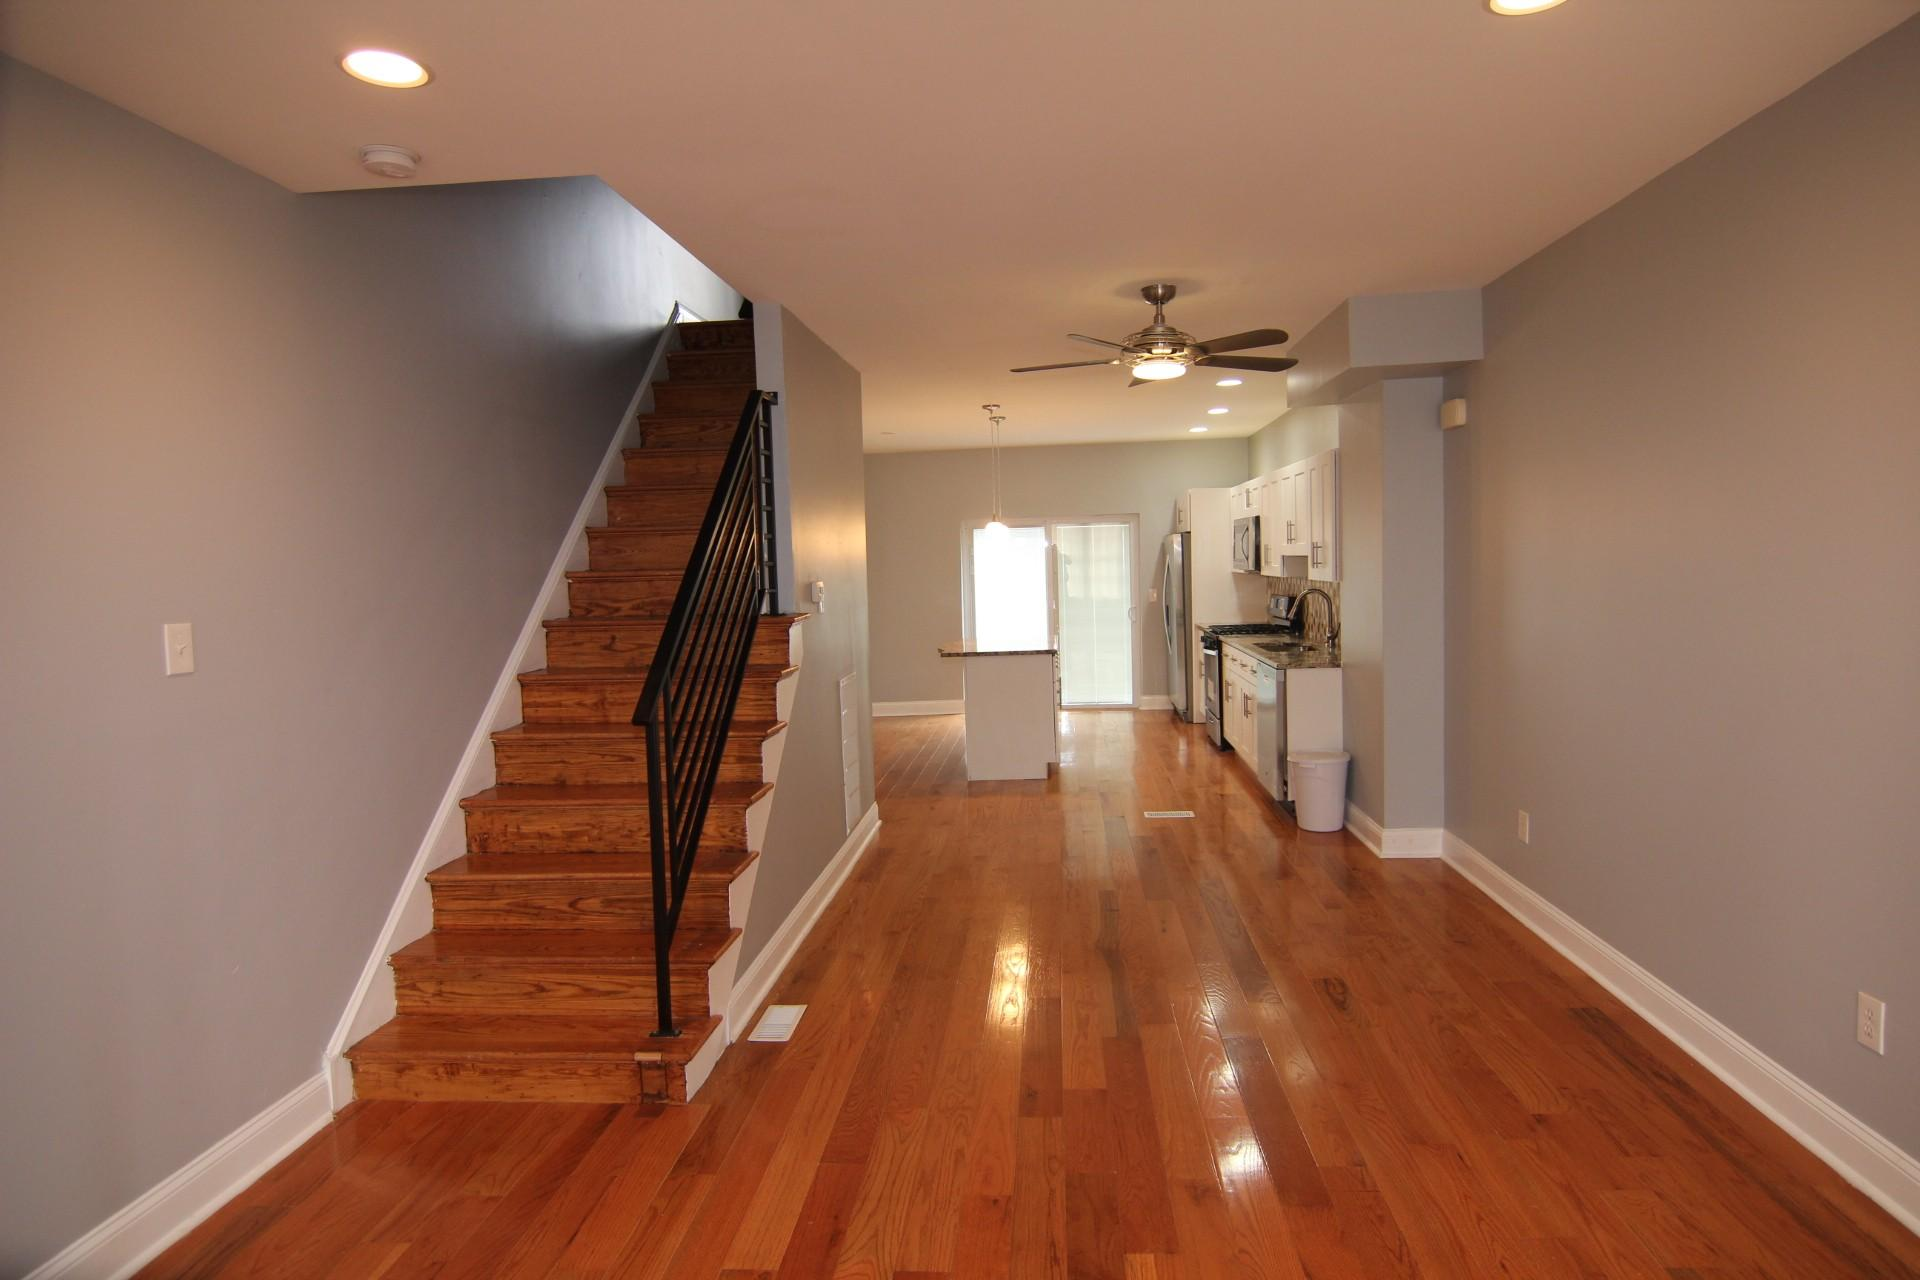 Newly remodeled and ready to go. Will Consider!